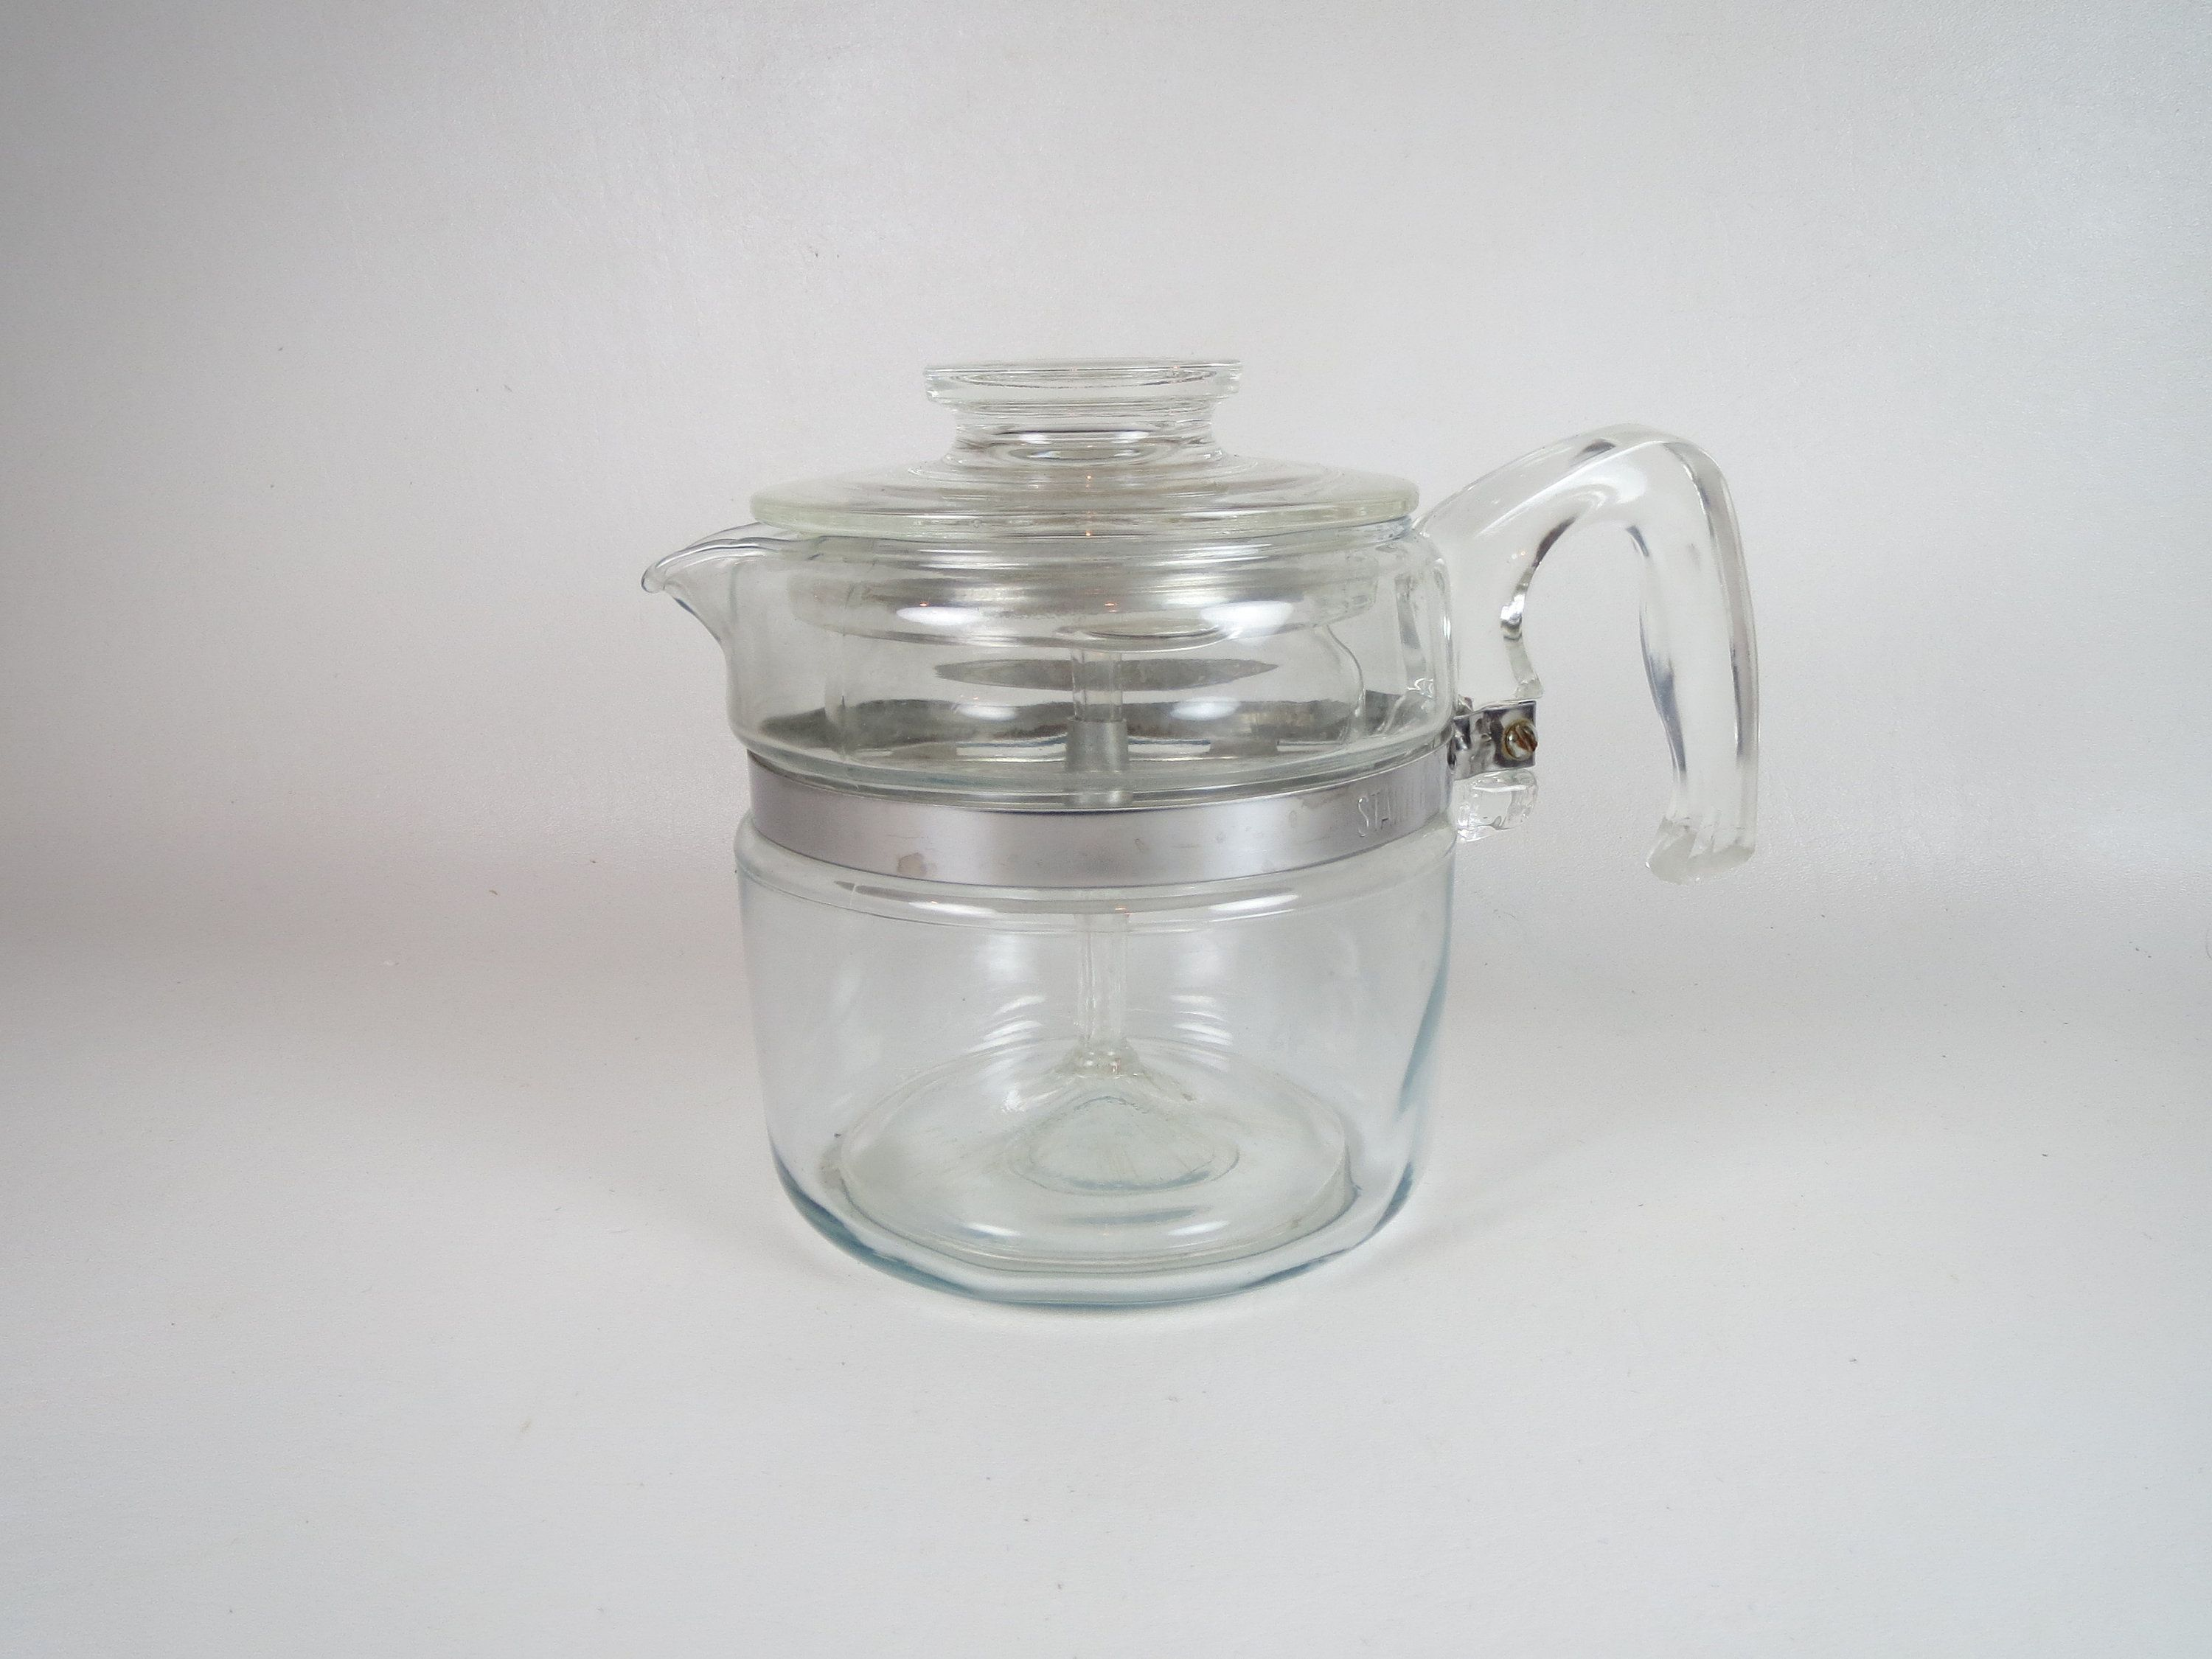 Pyrex Flameware 4 Cup Percolator Clear Glass Coffee Pot Etsy In 2020 Vintage Coffee Pot Vintage Stoves Coffee Pot